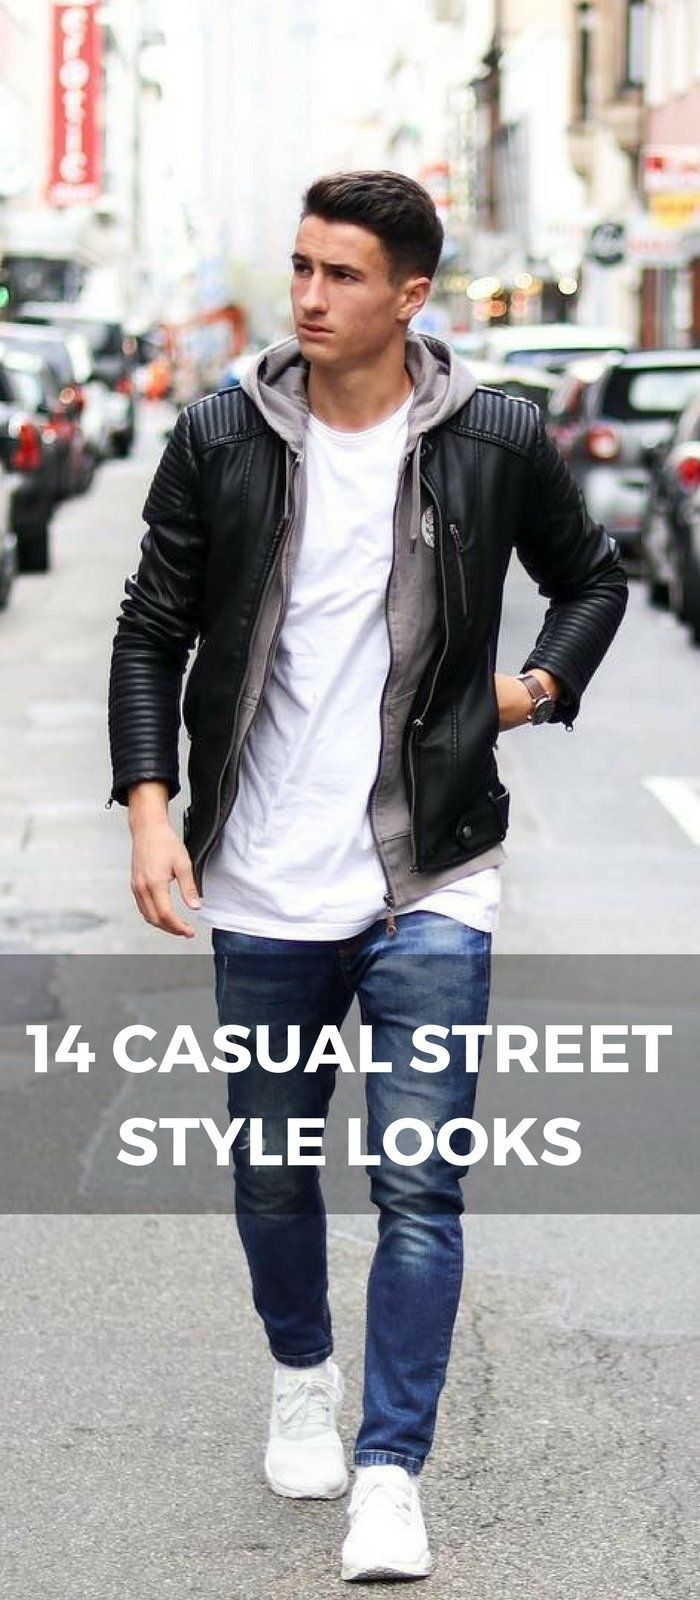 14 Coolest Casual Street Style Looks For Men